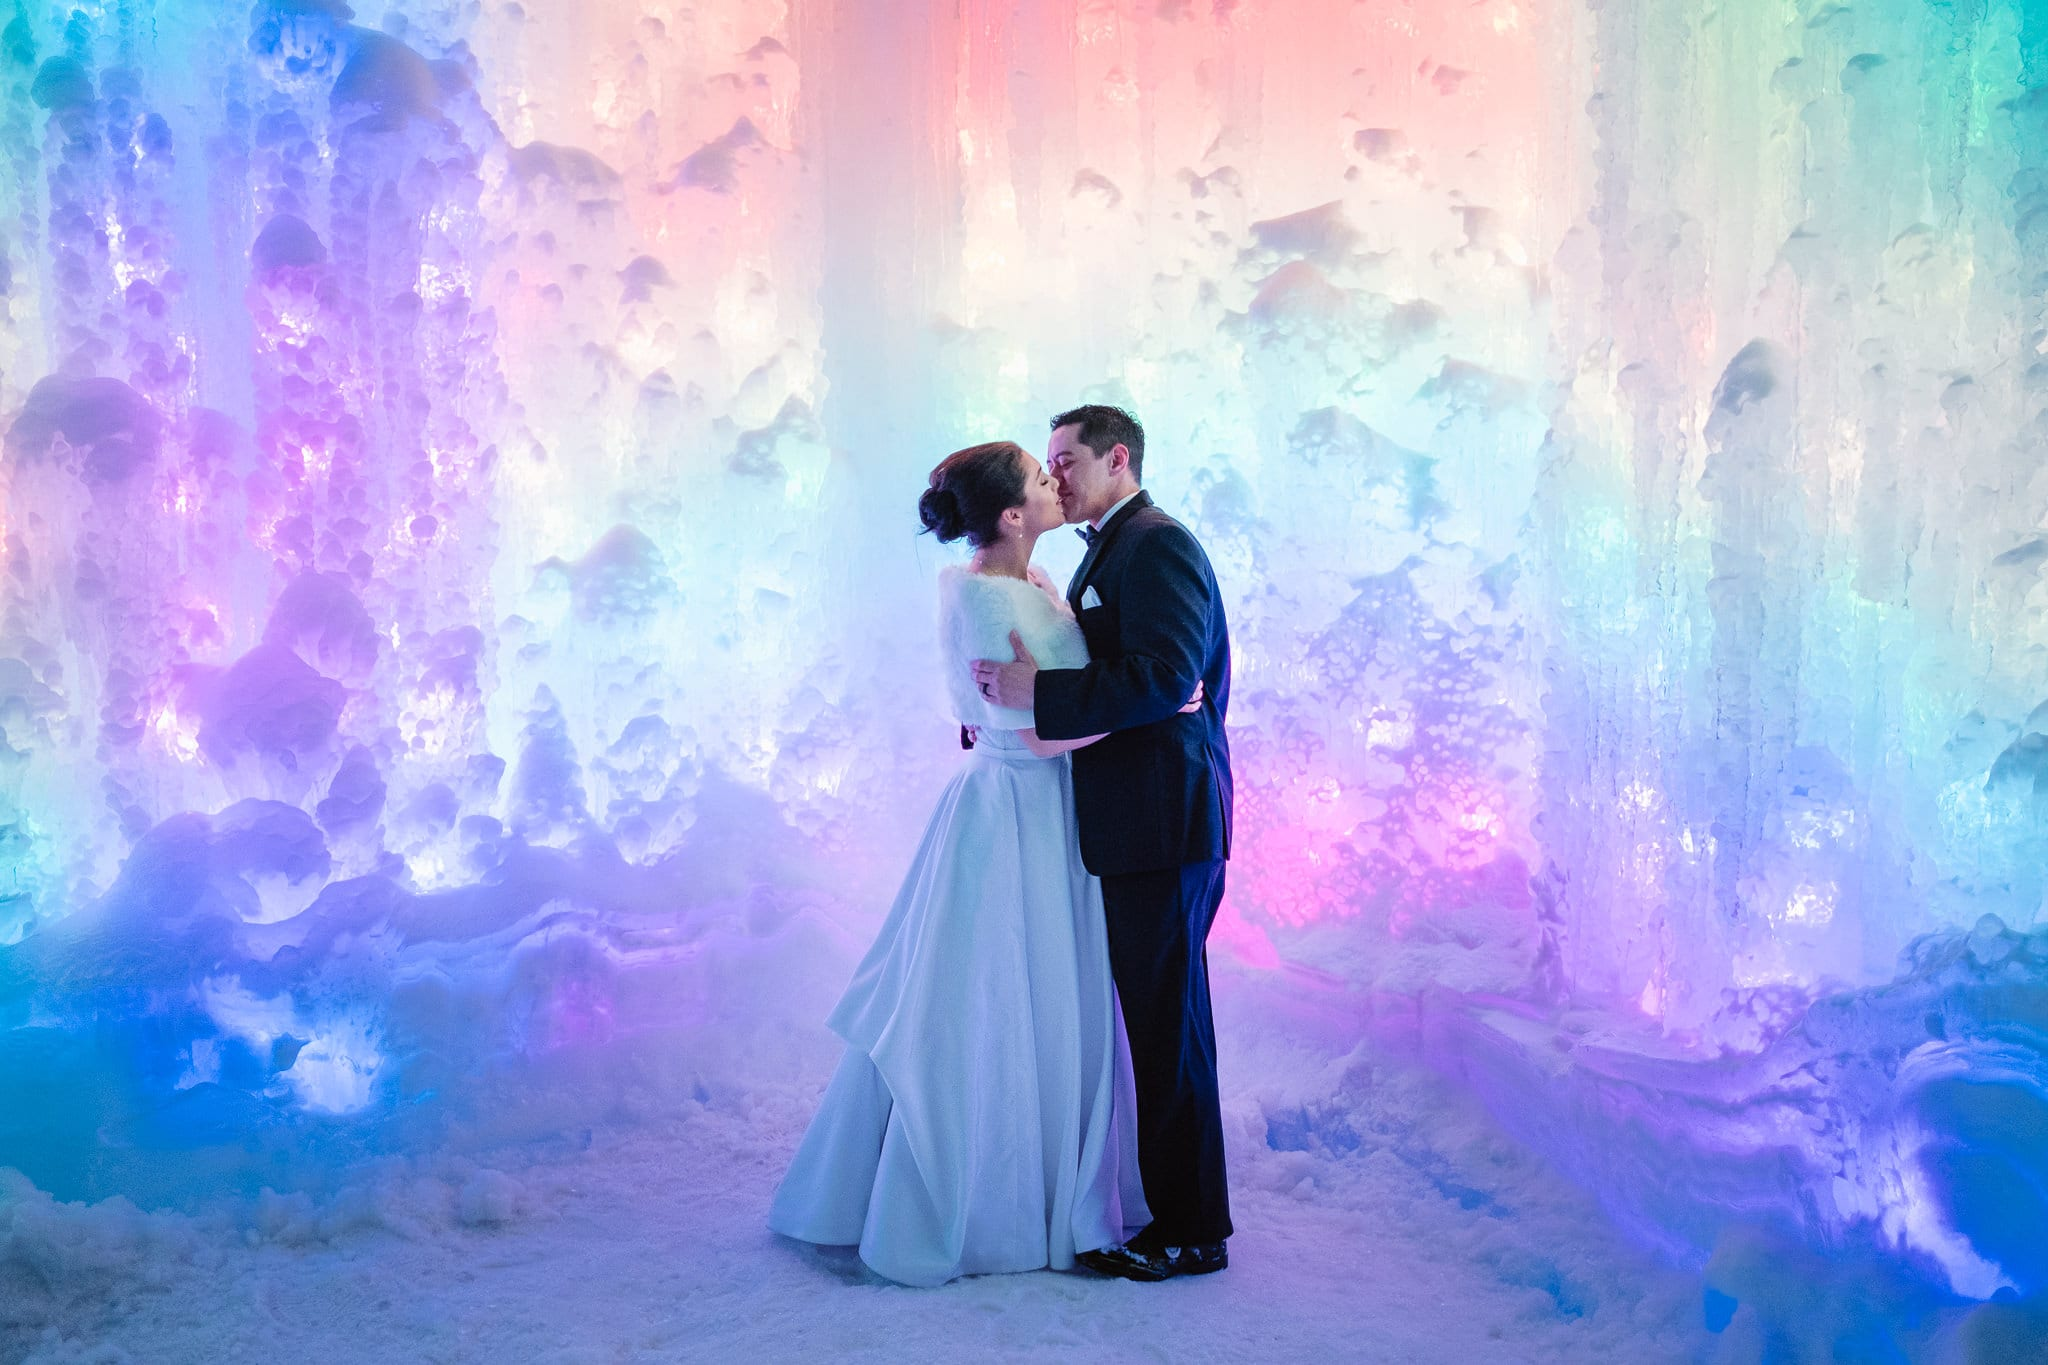 Ice Castles wedding photography, Dillon Colorado winter elopement, bride and groom inside ice castle lit up with rainbow lights